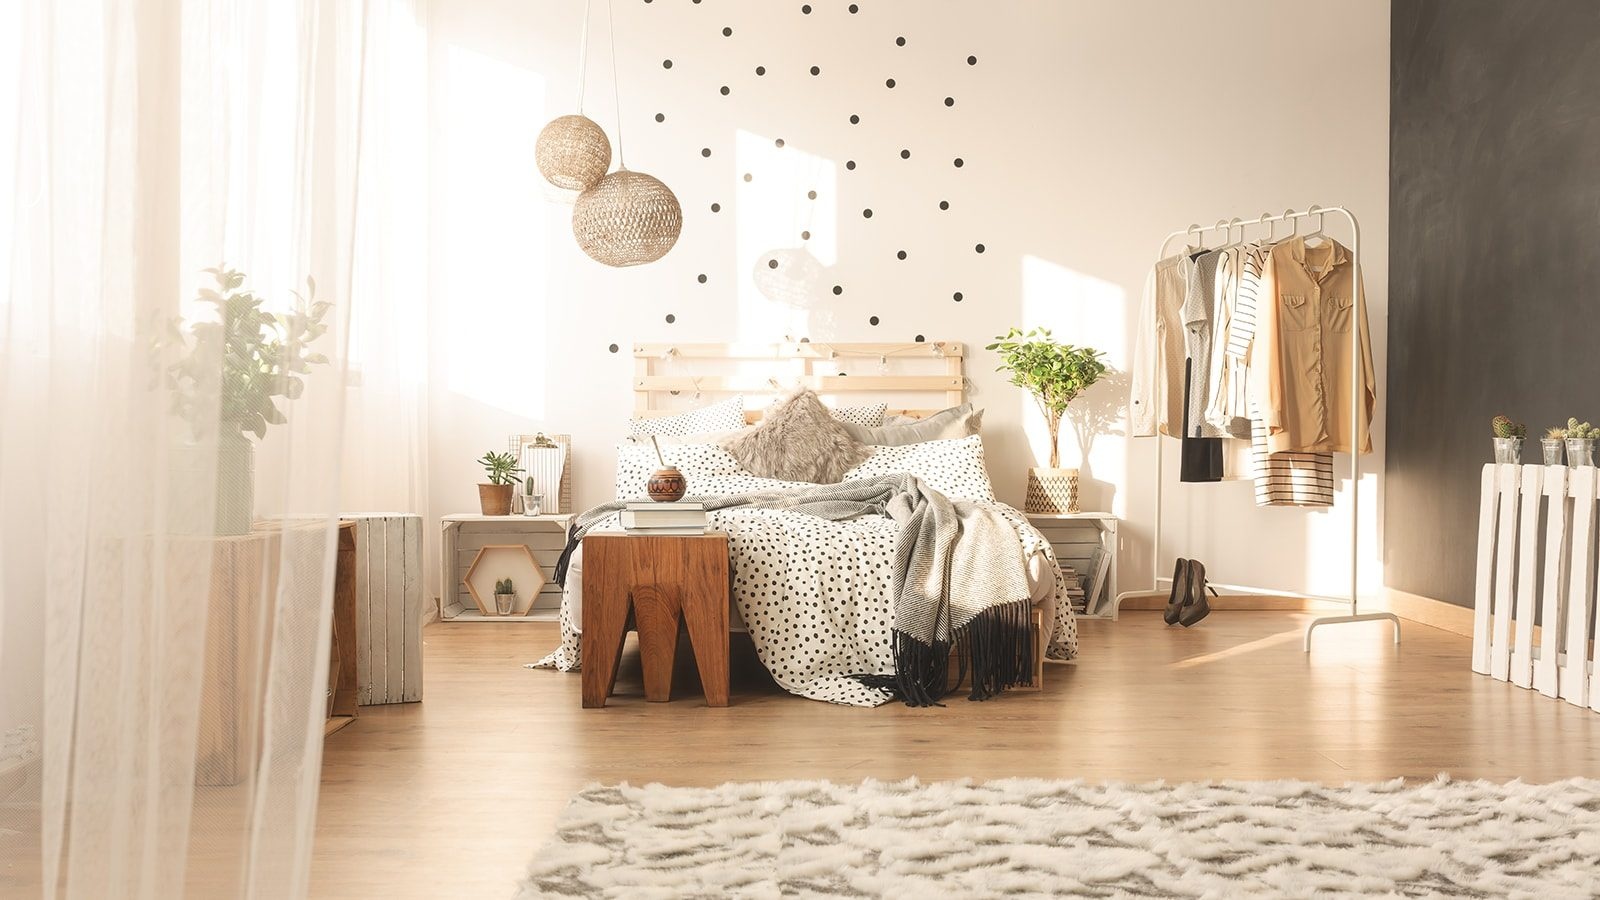 Trendy bedroom interior